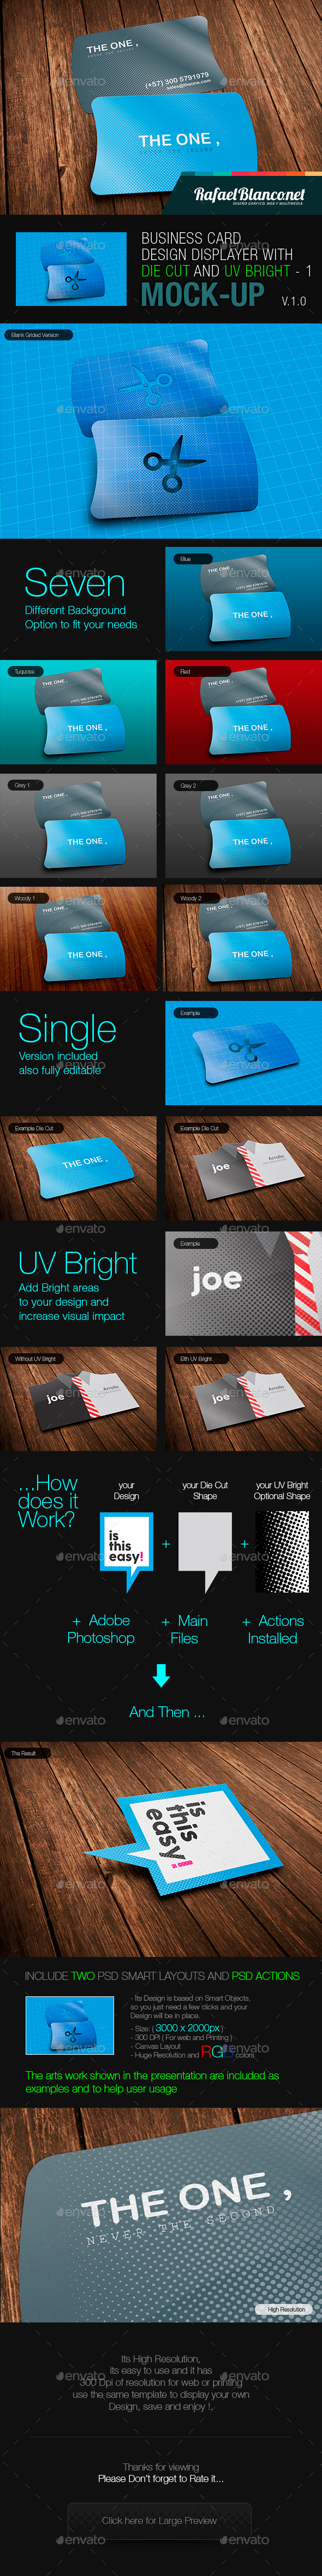 Horizontal Business Card Design Displayer with Die Cut and UV Bright - 1 - Miscellaneous Displays